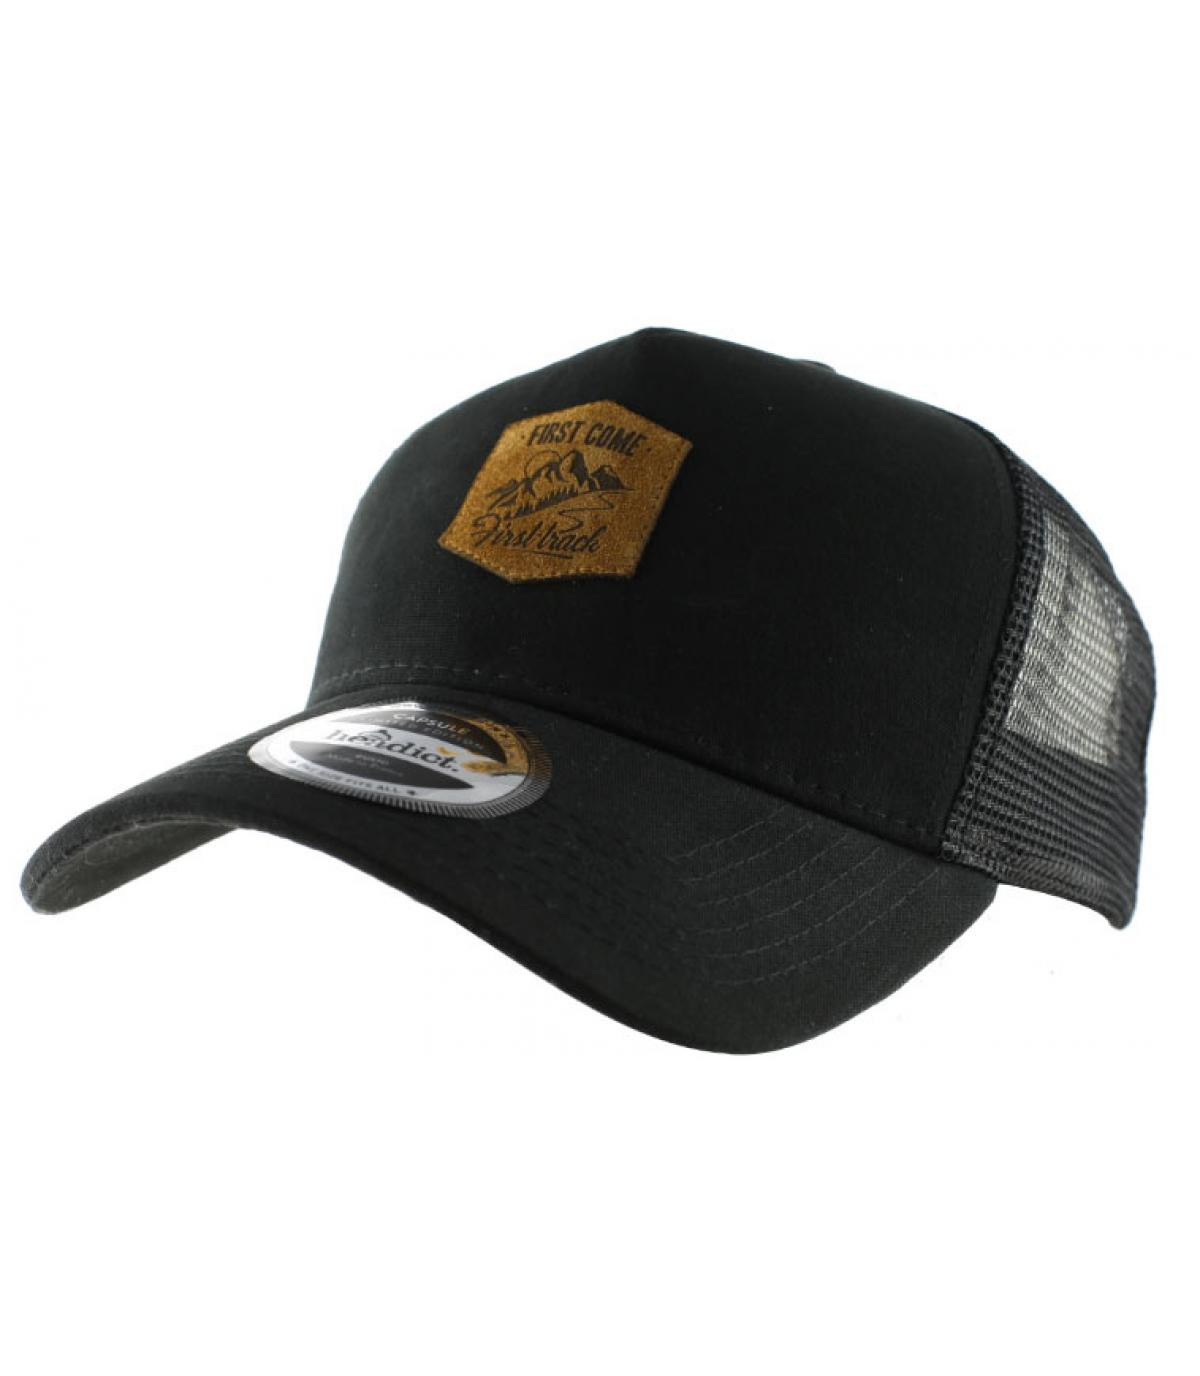 Détails Trucker First Come First Track black - image 2